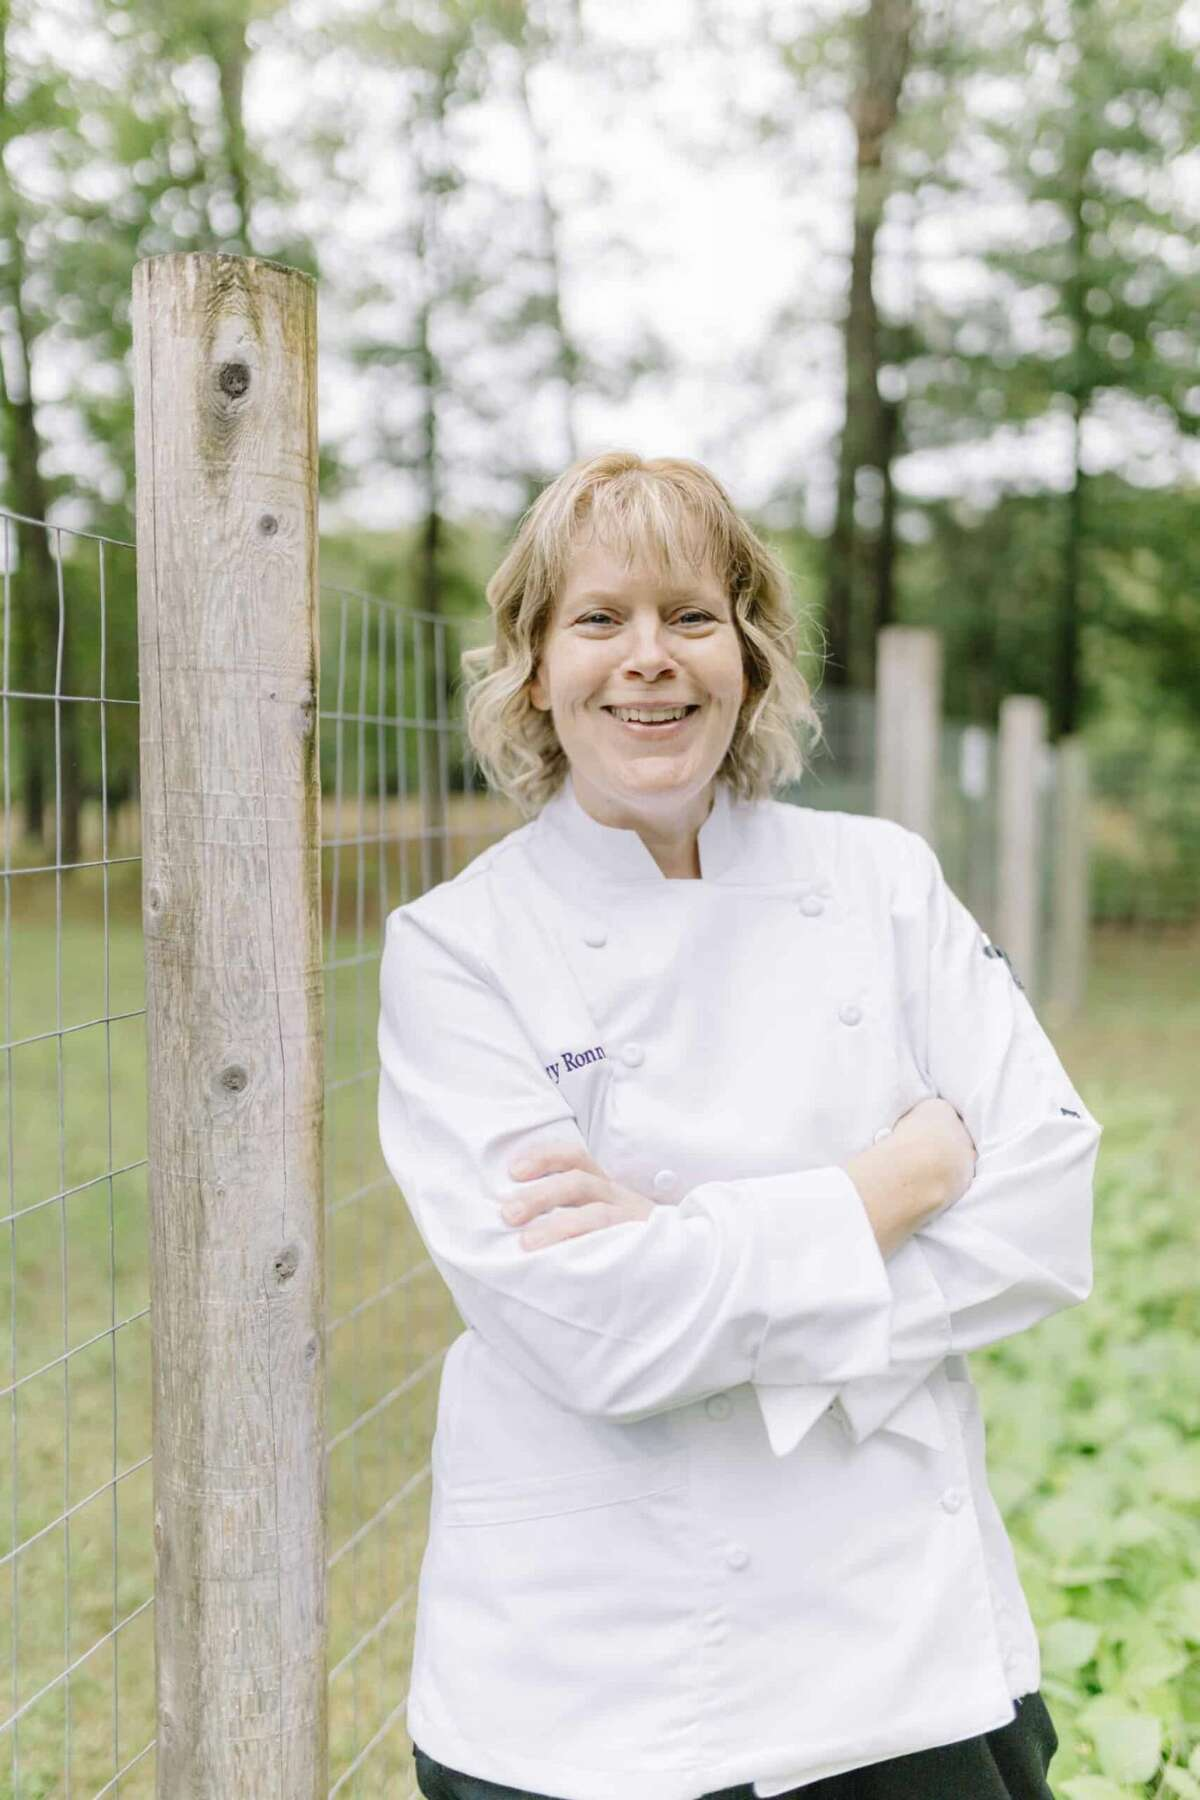 Sherry Ronning shares Midwestern cuisine recipes on her food blog, From Michigan to the Table.